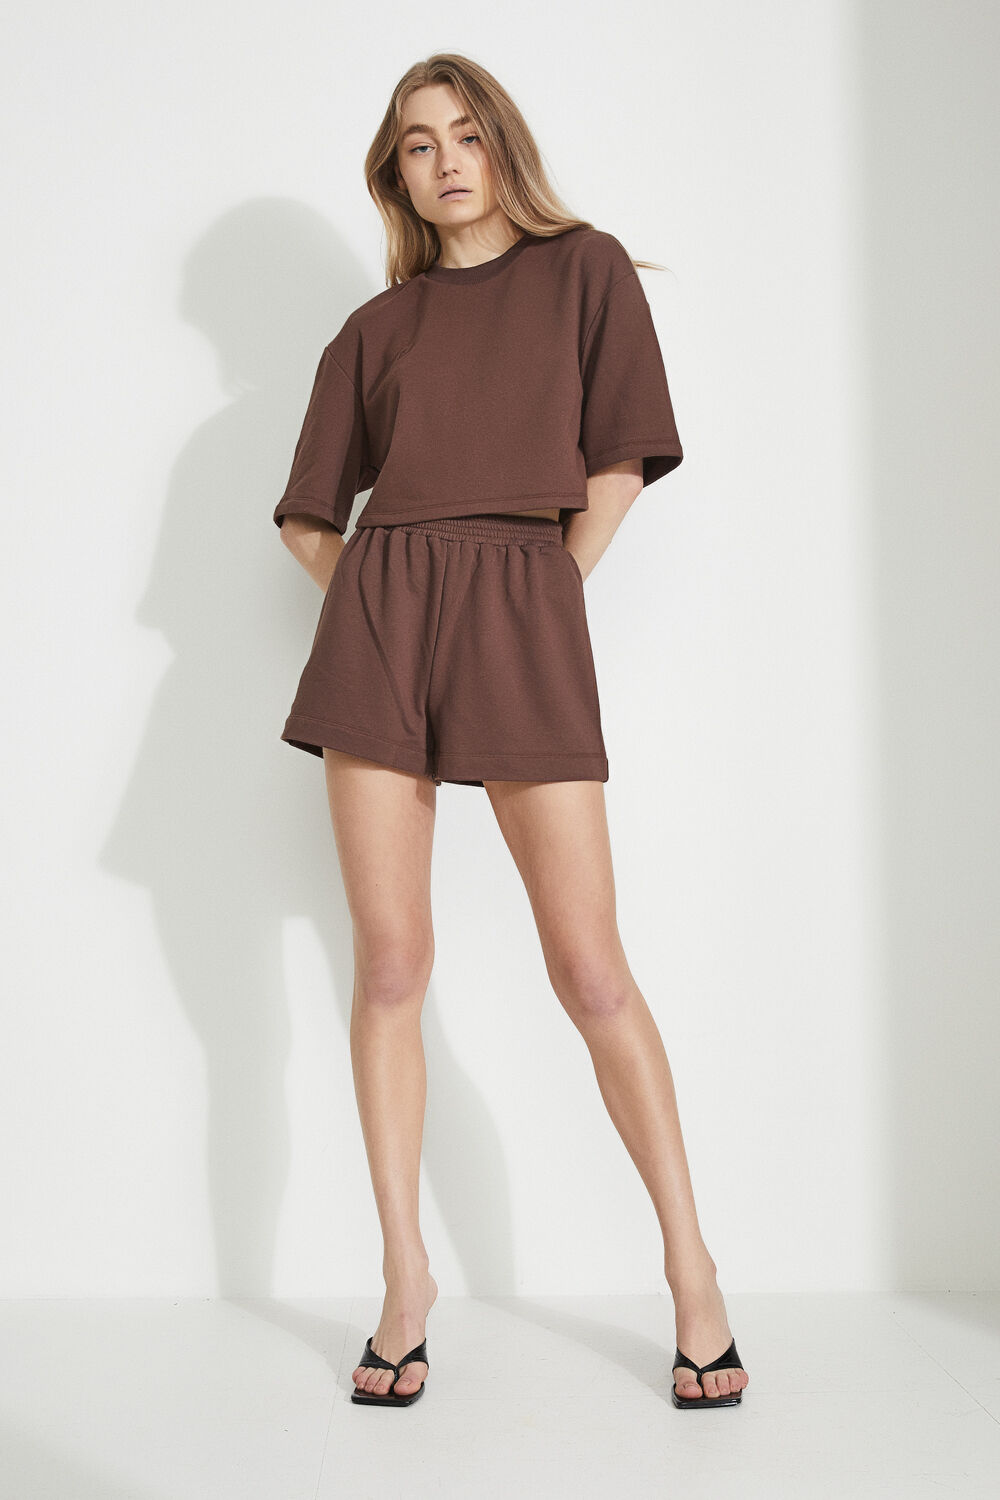 TRACK SHORTS in colour CHOCOLATE BROWN